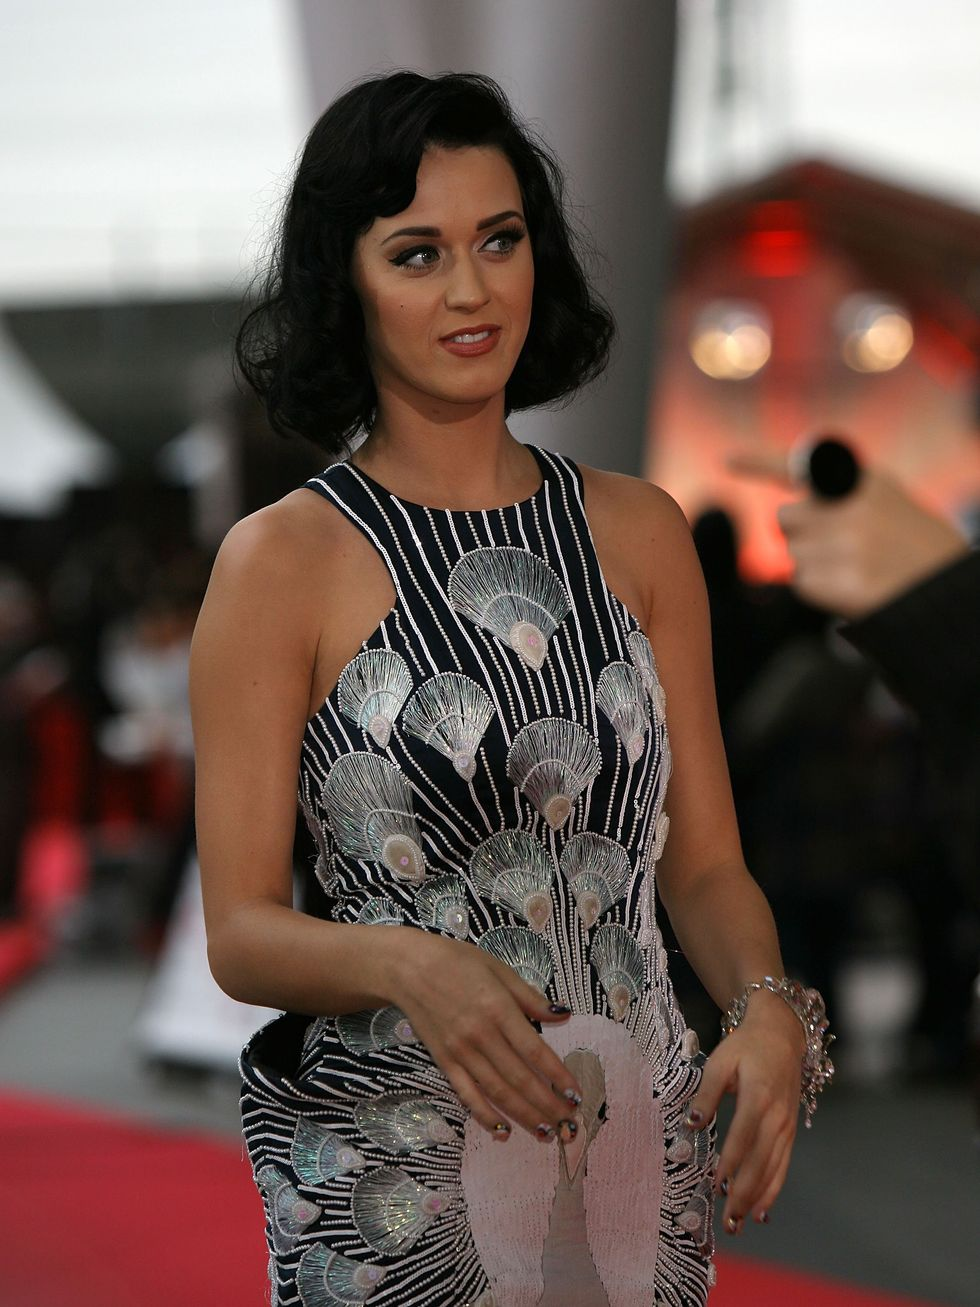 katy-perry-mtv-video-music-awards-japan-2009-01